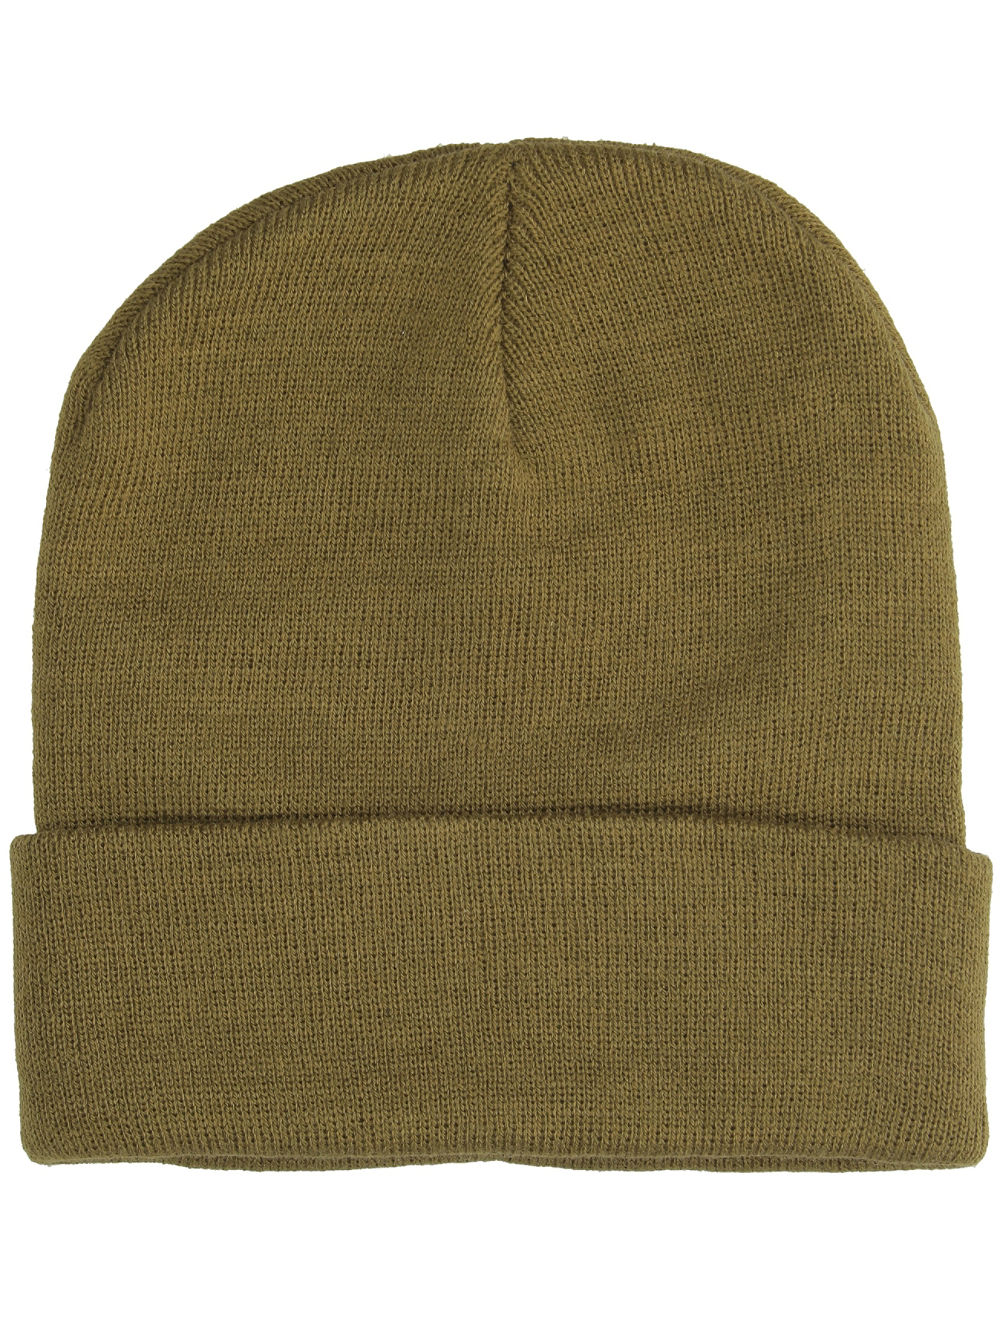 Deluxe Fine Knit Watch Beanie